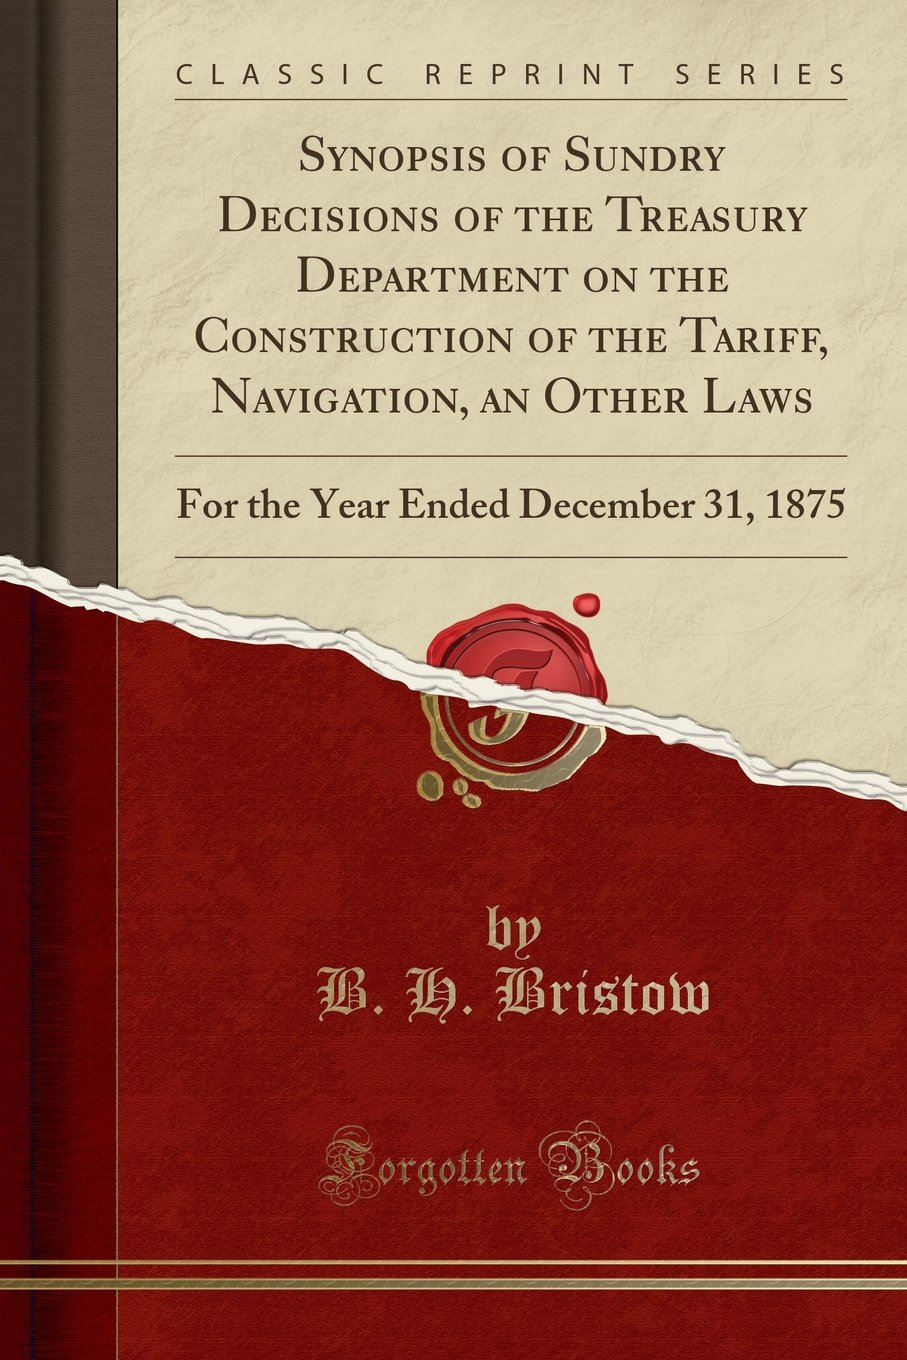 Download Synopsis of Sundry Decisions of the Treasury Department on the Construction of the Tariff, Navigation, an Other Laws: For the Year Ended December 31, 1875 (Classic Reprint) pdf epub